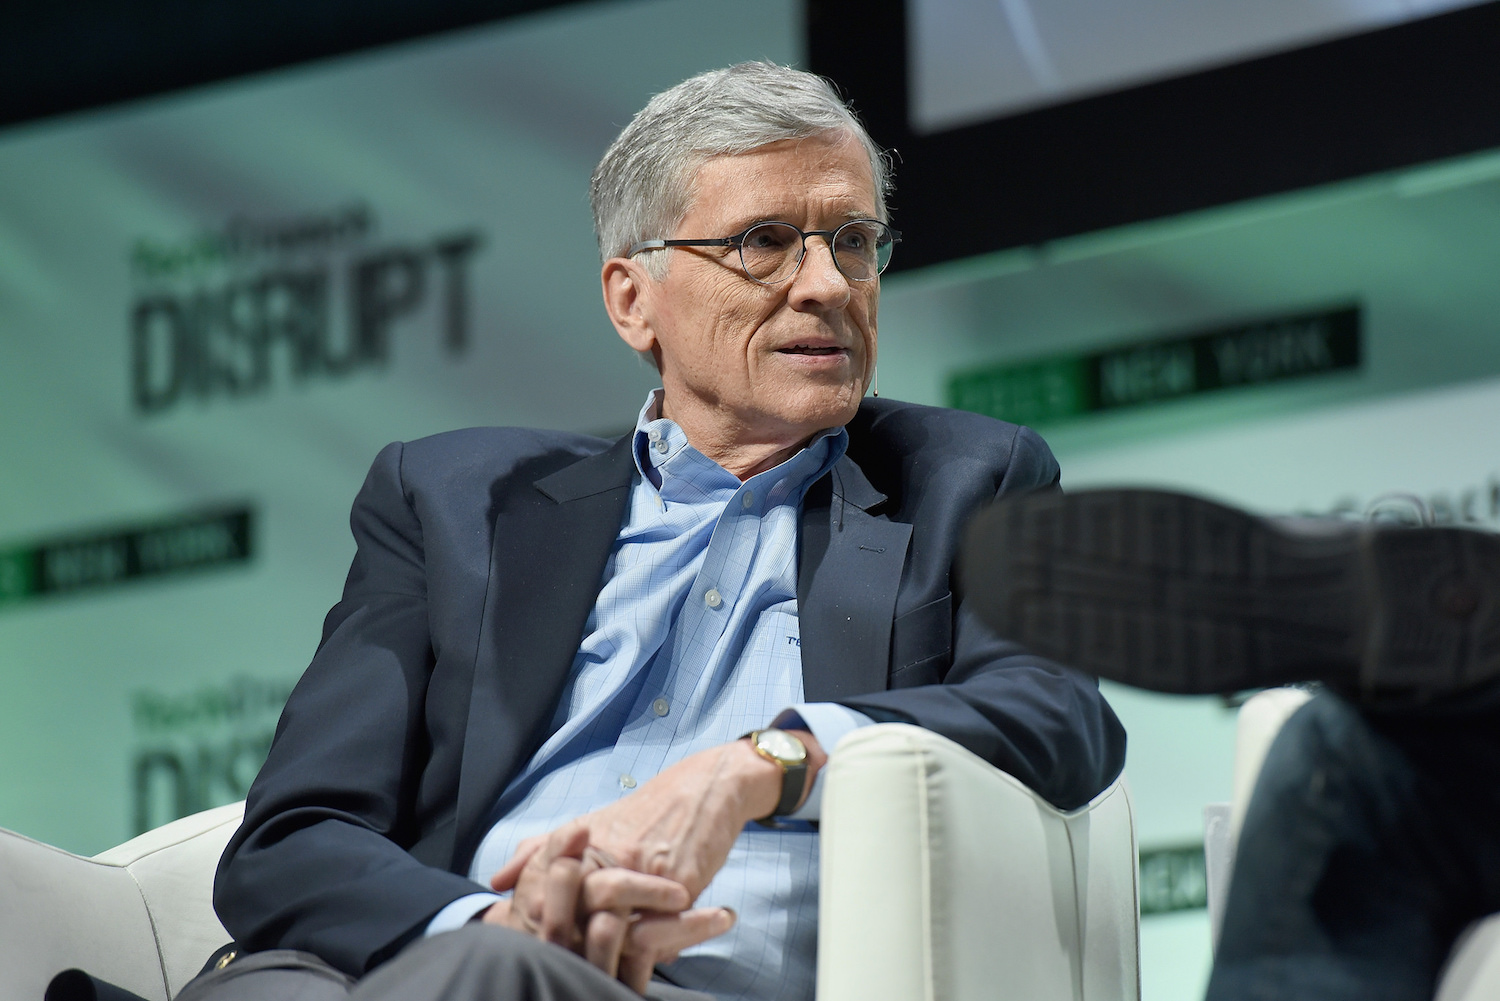 Time's Running Out for the FCC on Set-Top Reform, Privacy and Zero-Rating | Motherboard